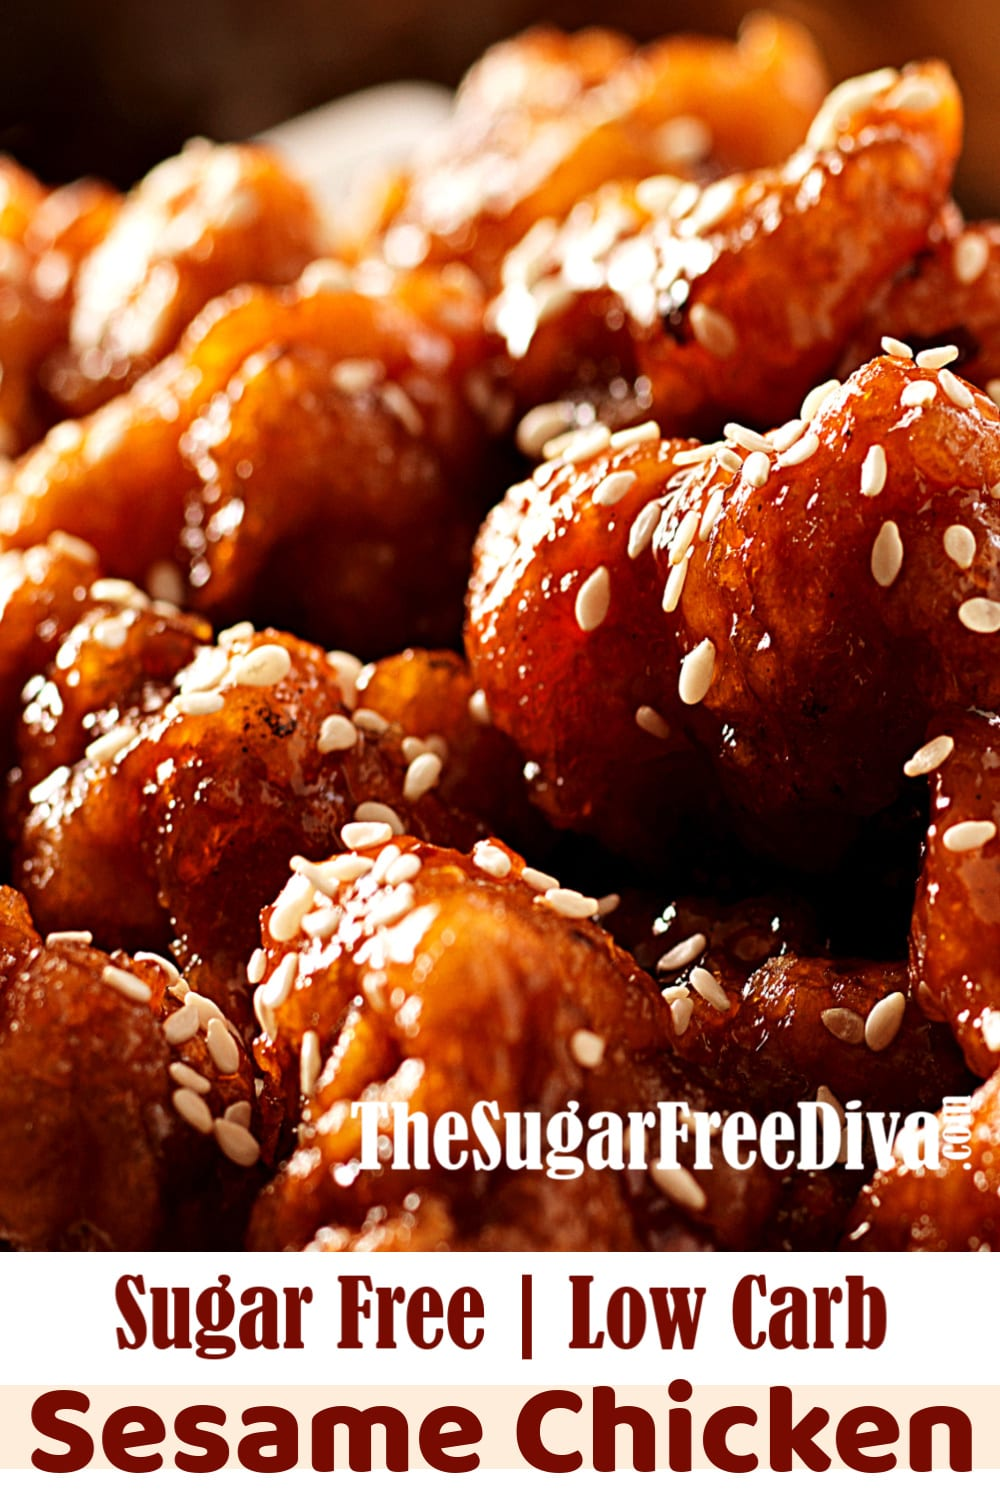 Sugar Free Sesame Chicken